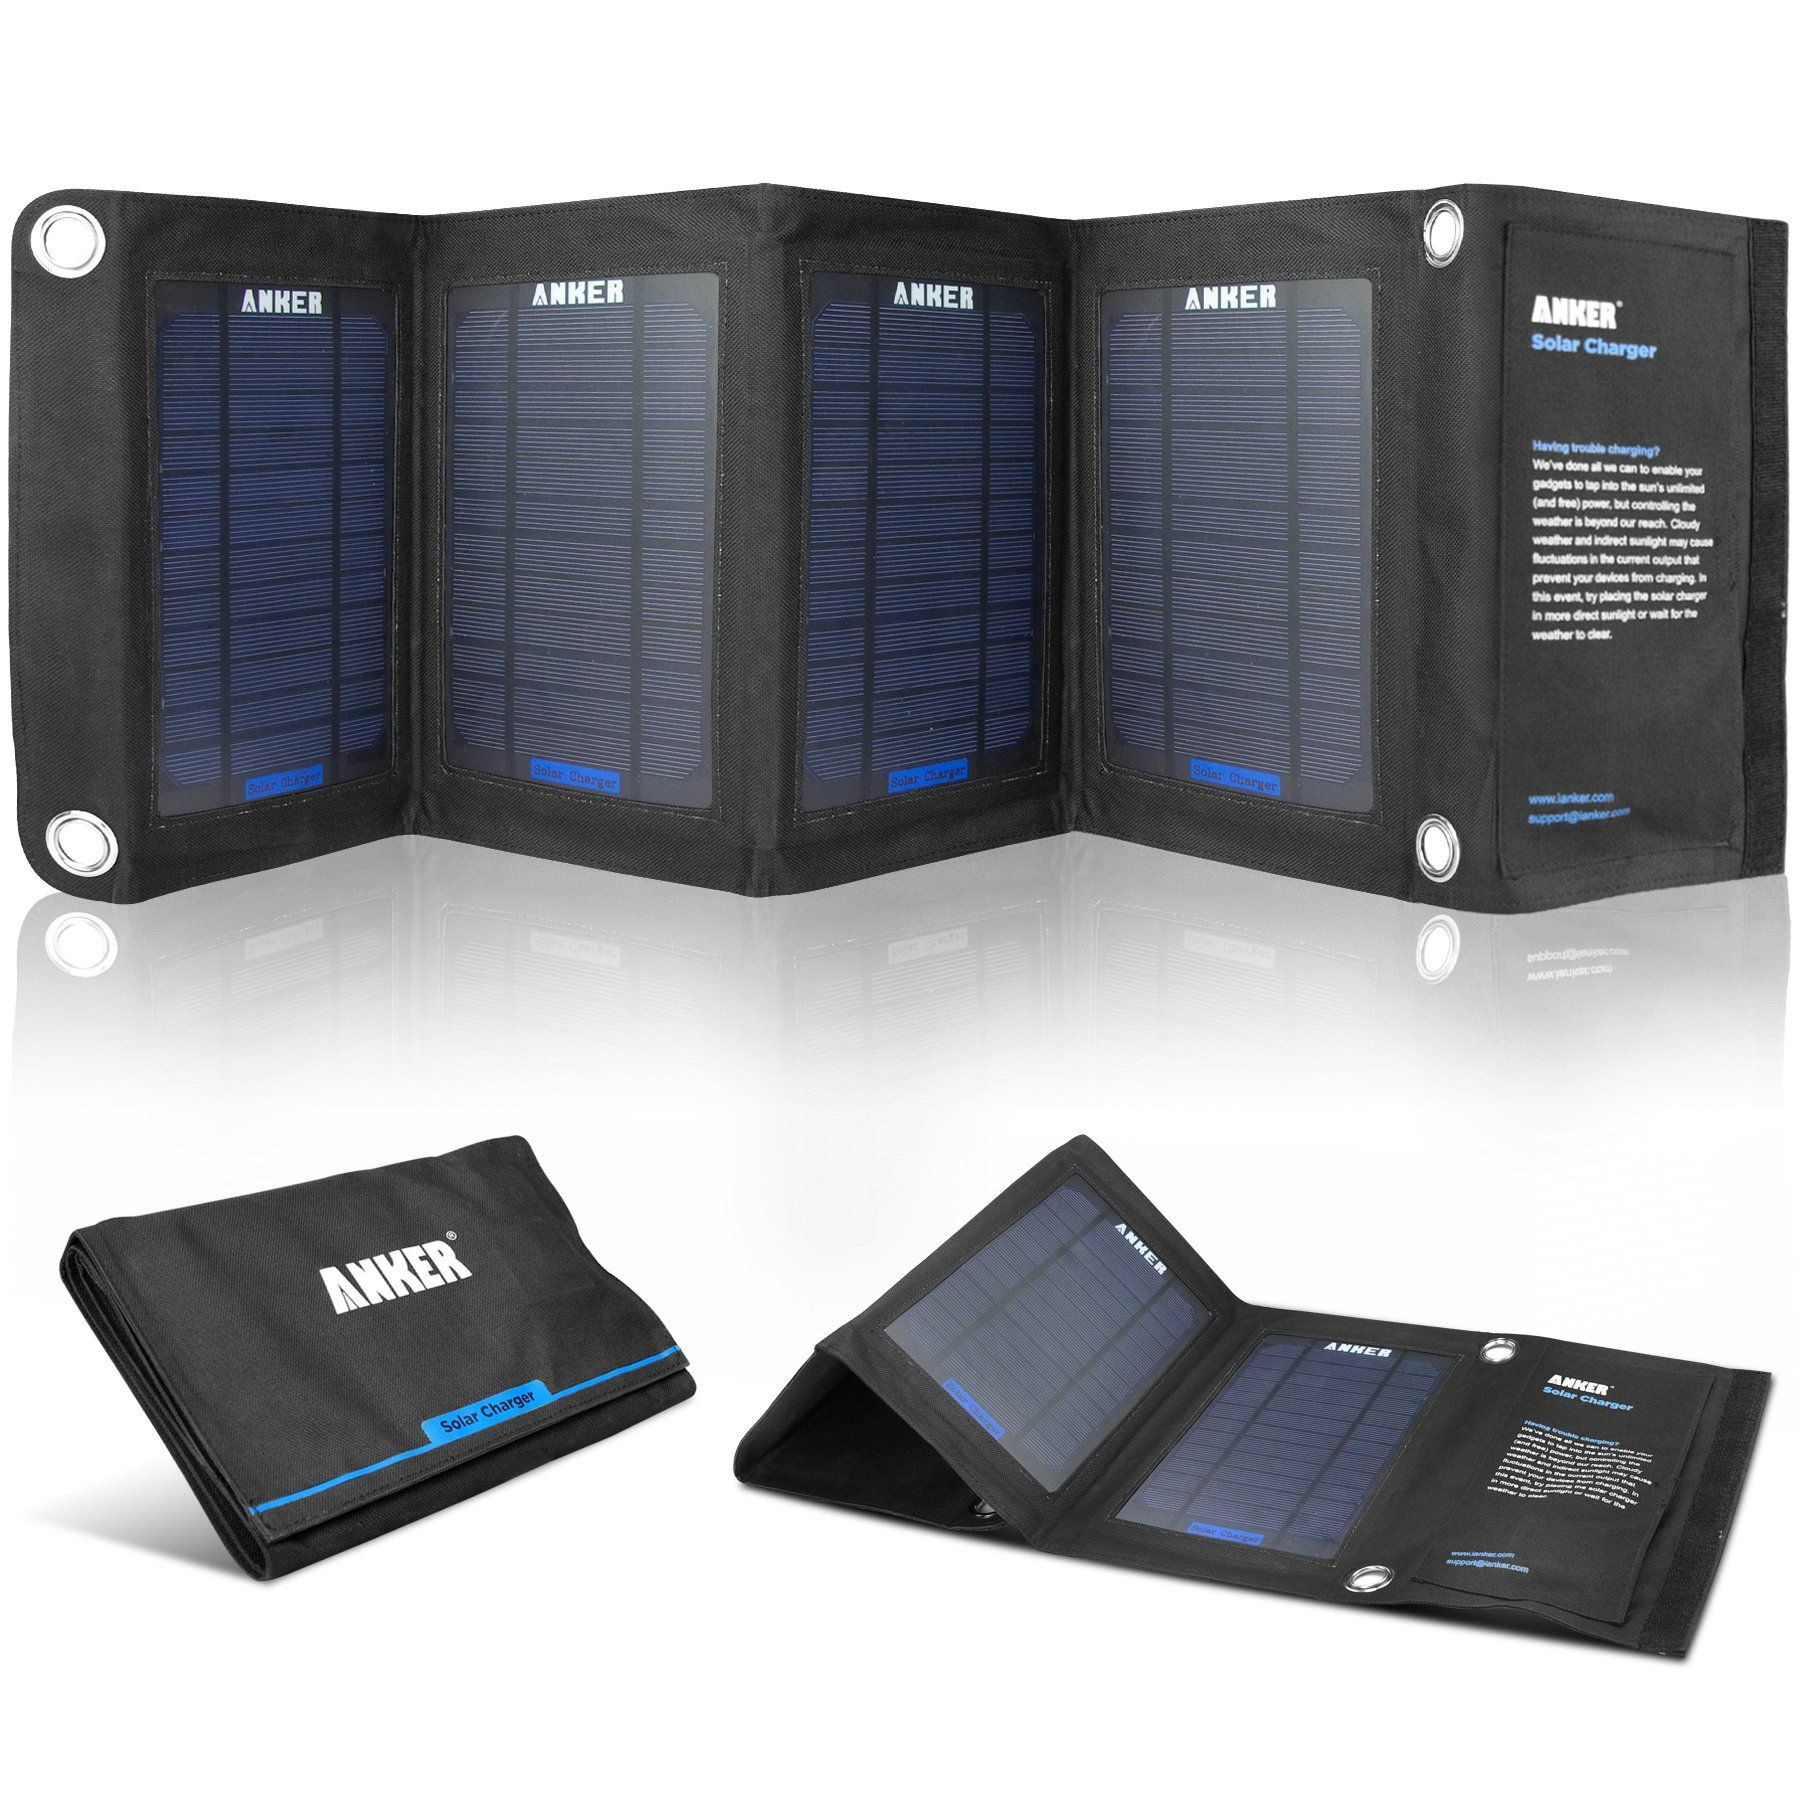 Anker 174 14w Dual Port Solar Charger With Poweriq